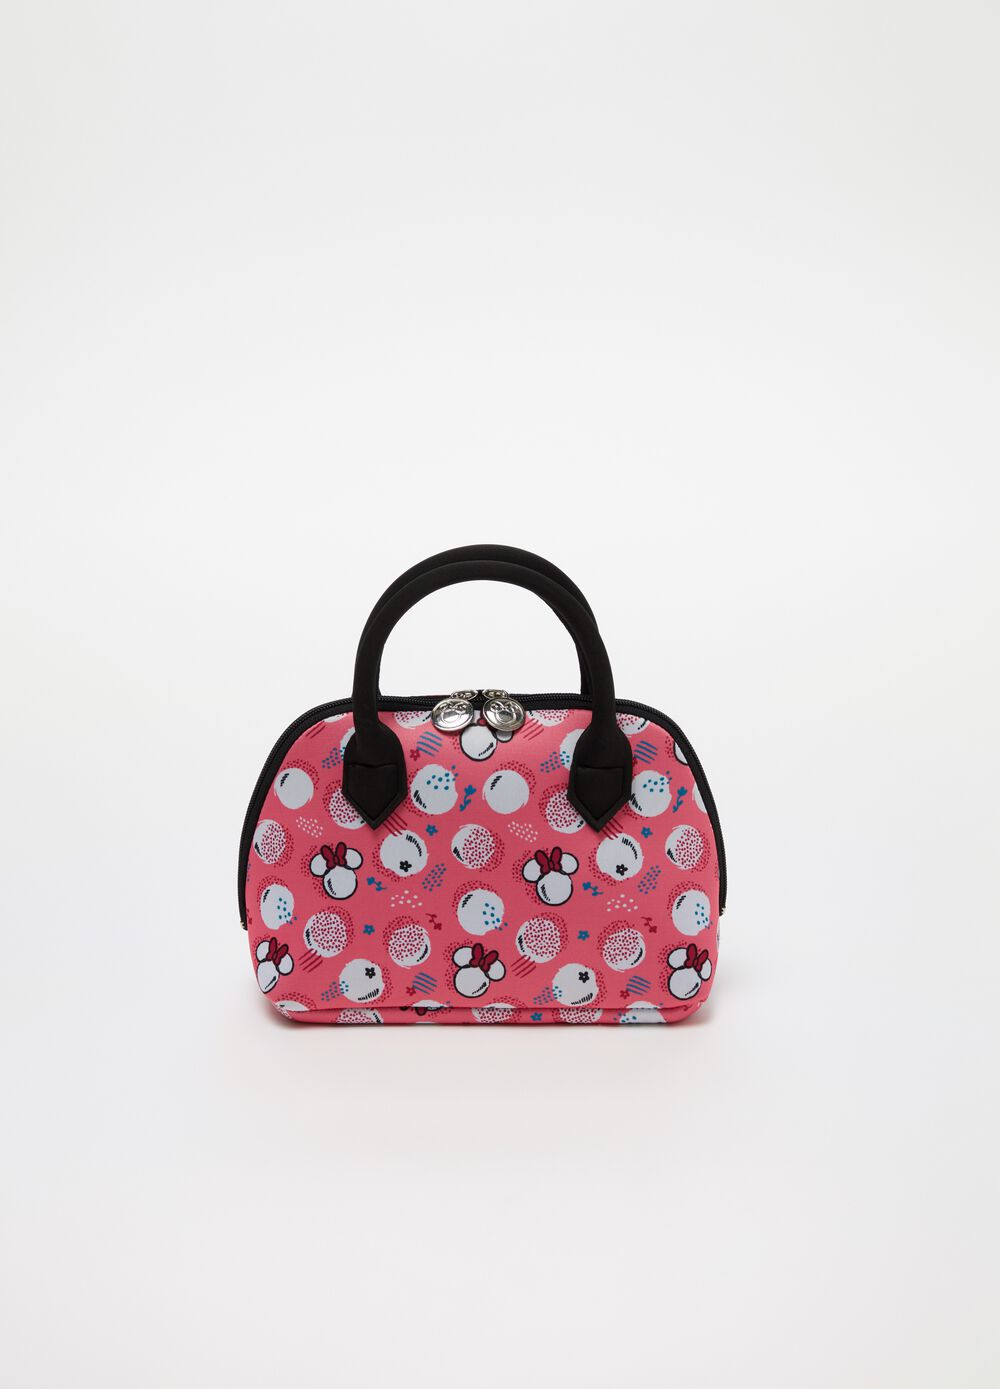 Borsa a mano fantasia Disney Minnie